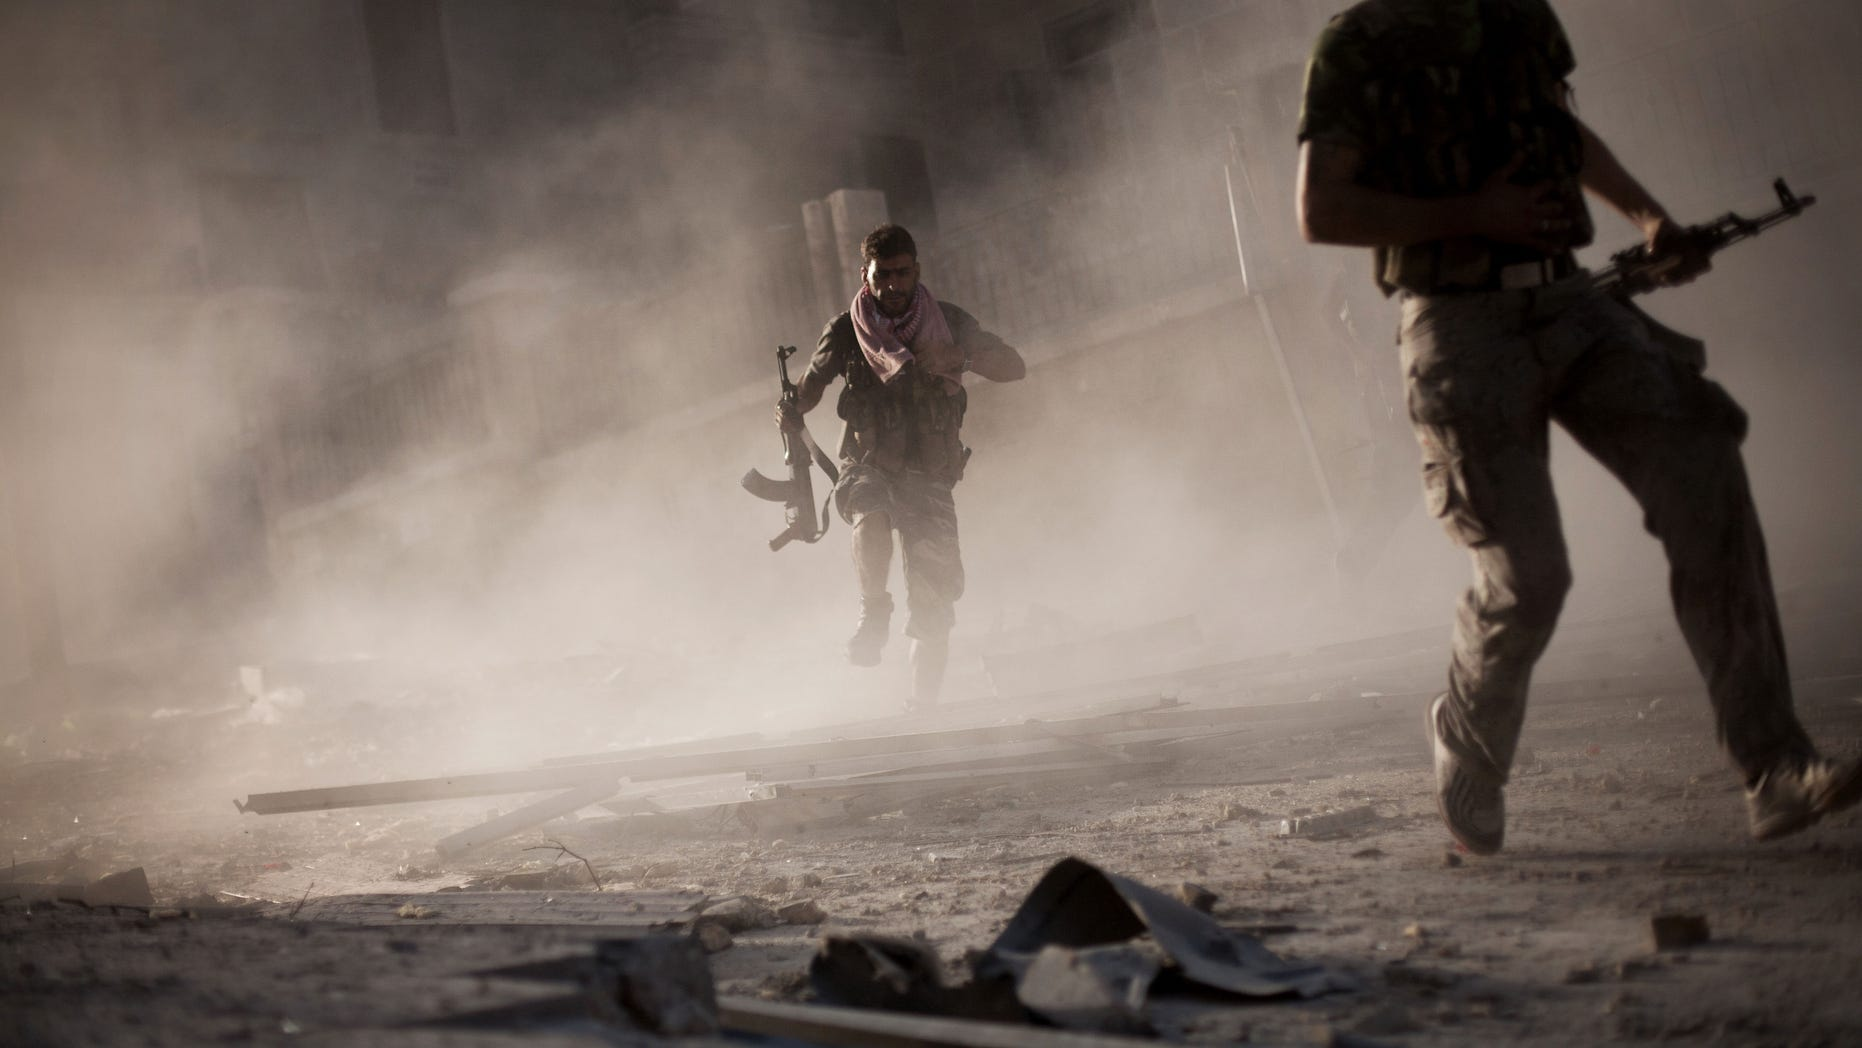 Sept. 7, 2012: In this photo, Free Syrian Army fighters run after attacking a Syrian Army tank during fighting in the Izaa district in Aleppo, Syria.